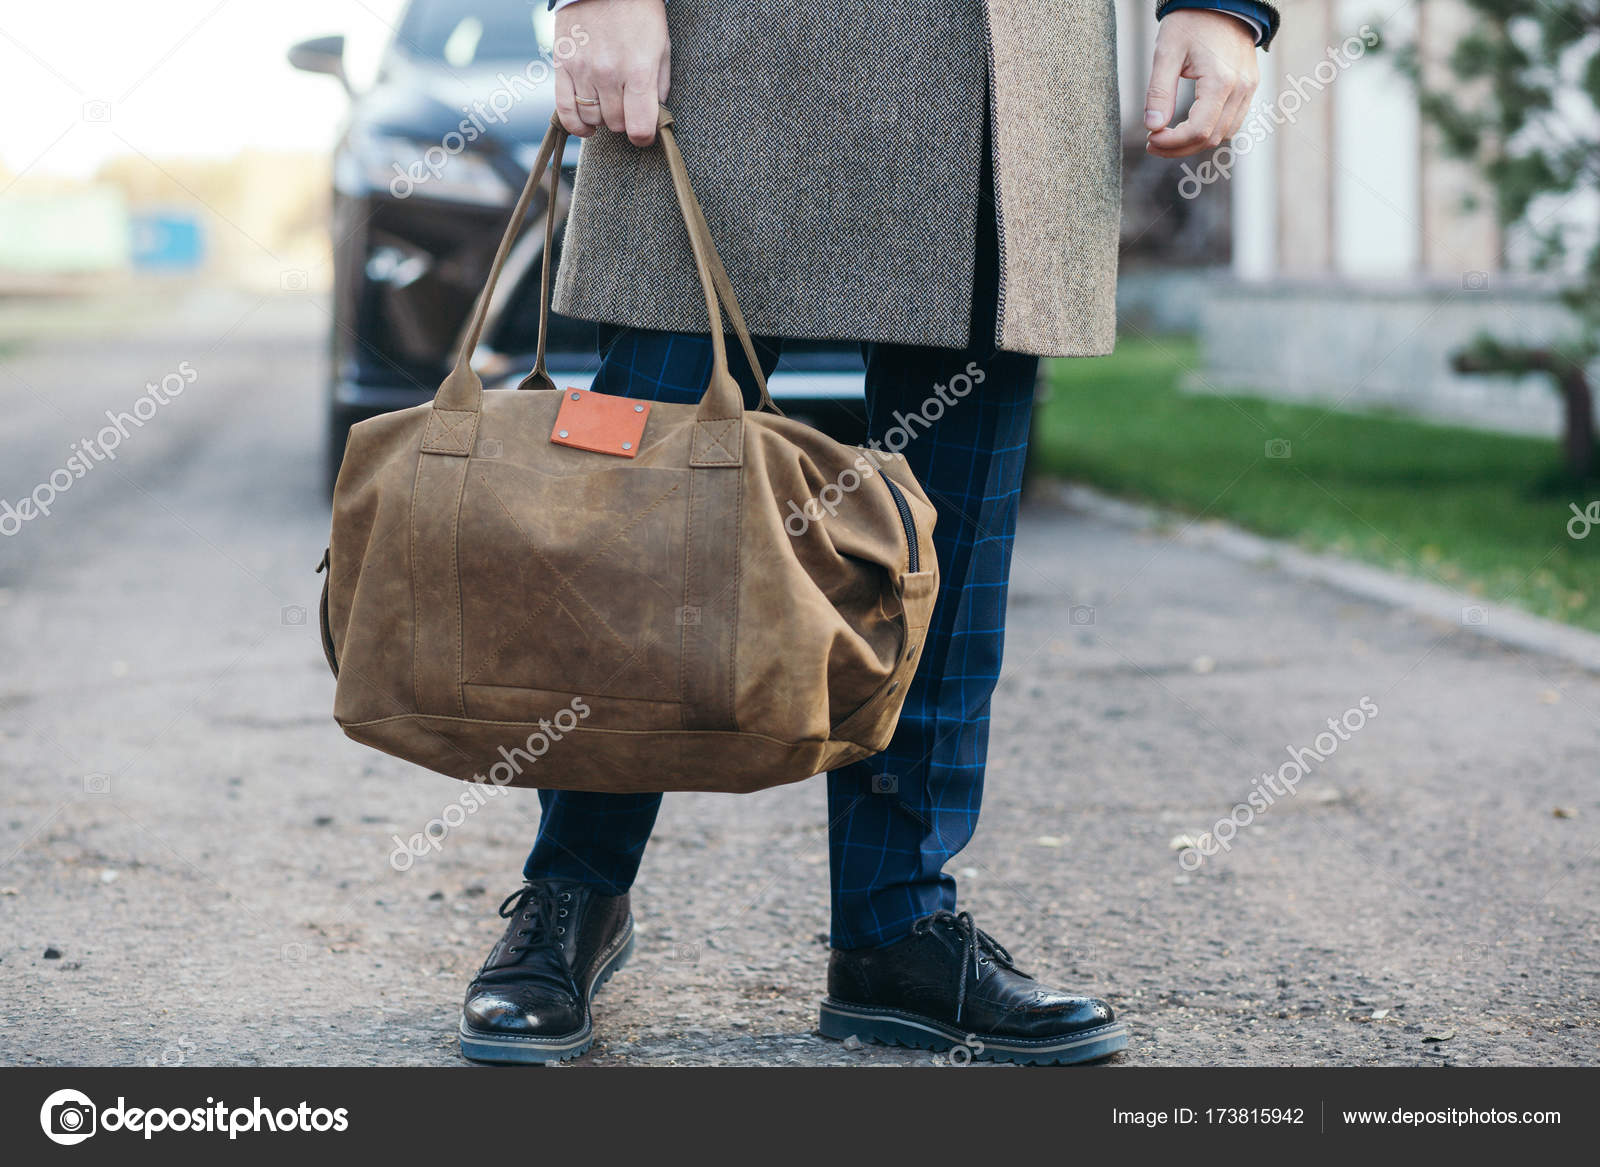 b8efa5ab4e The man with a bag goes to a coat to the house. — Stock Photo ...